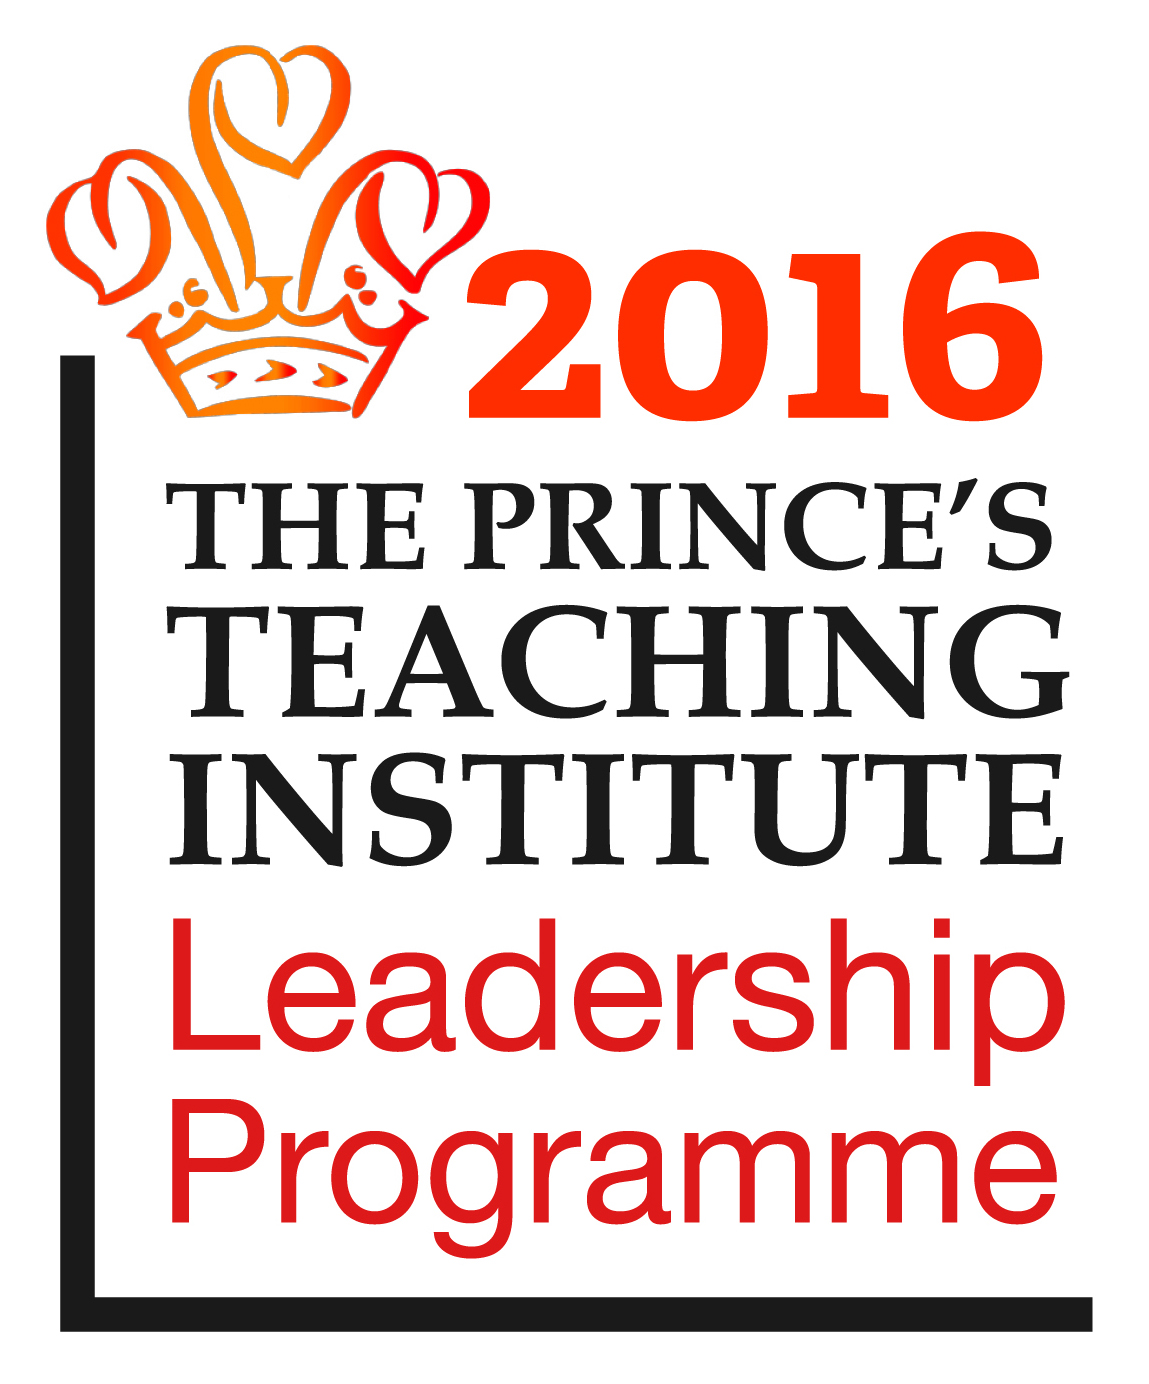 The Prince's Teaching Institute Leadership Programme 2016